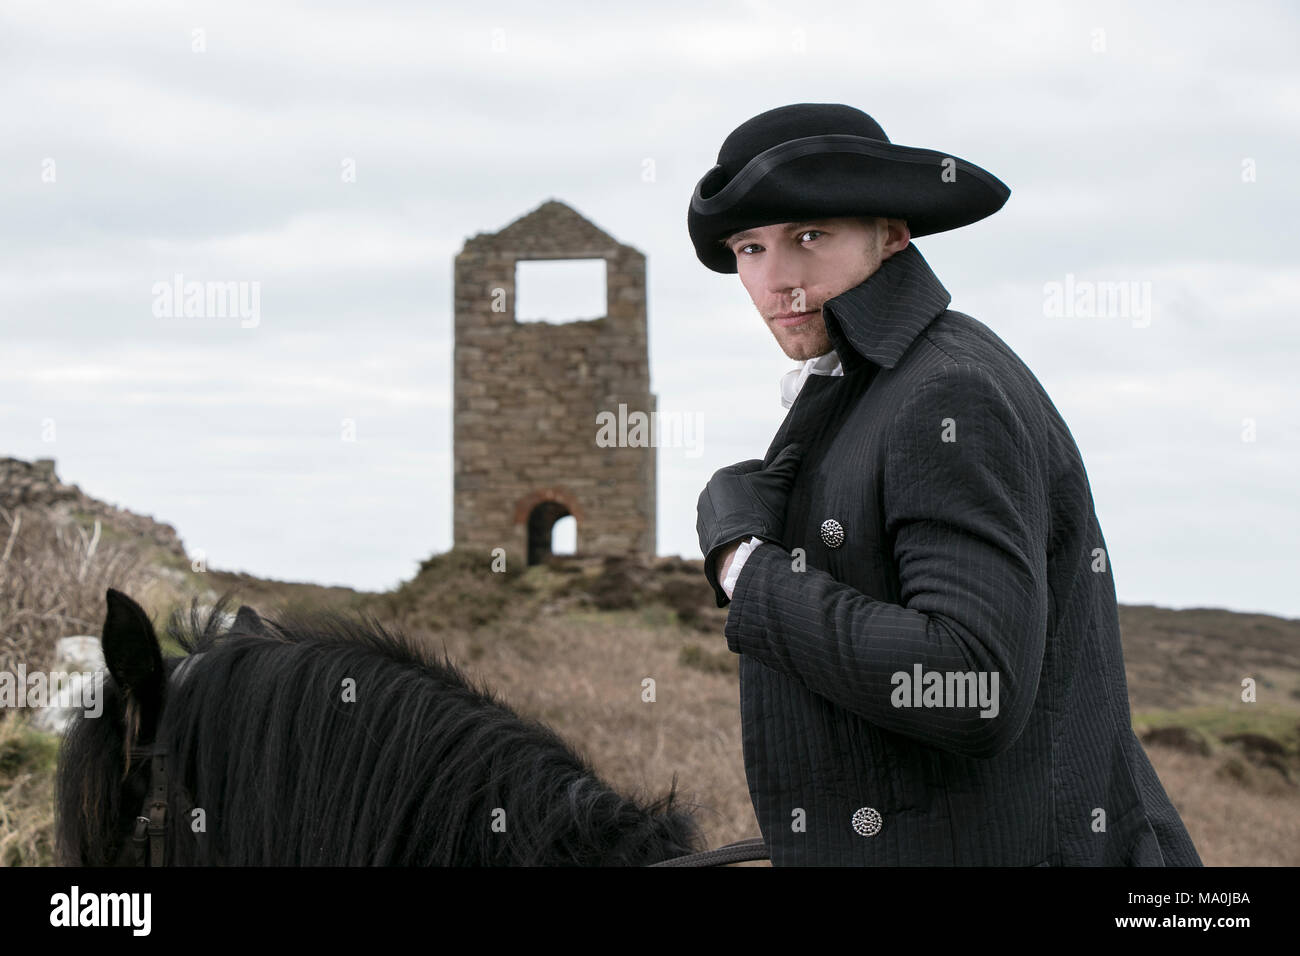 c5178812e9c Handsome Male Horse Rider Regency 18th Century Poldark Costume with tin  mine in background - Stock